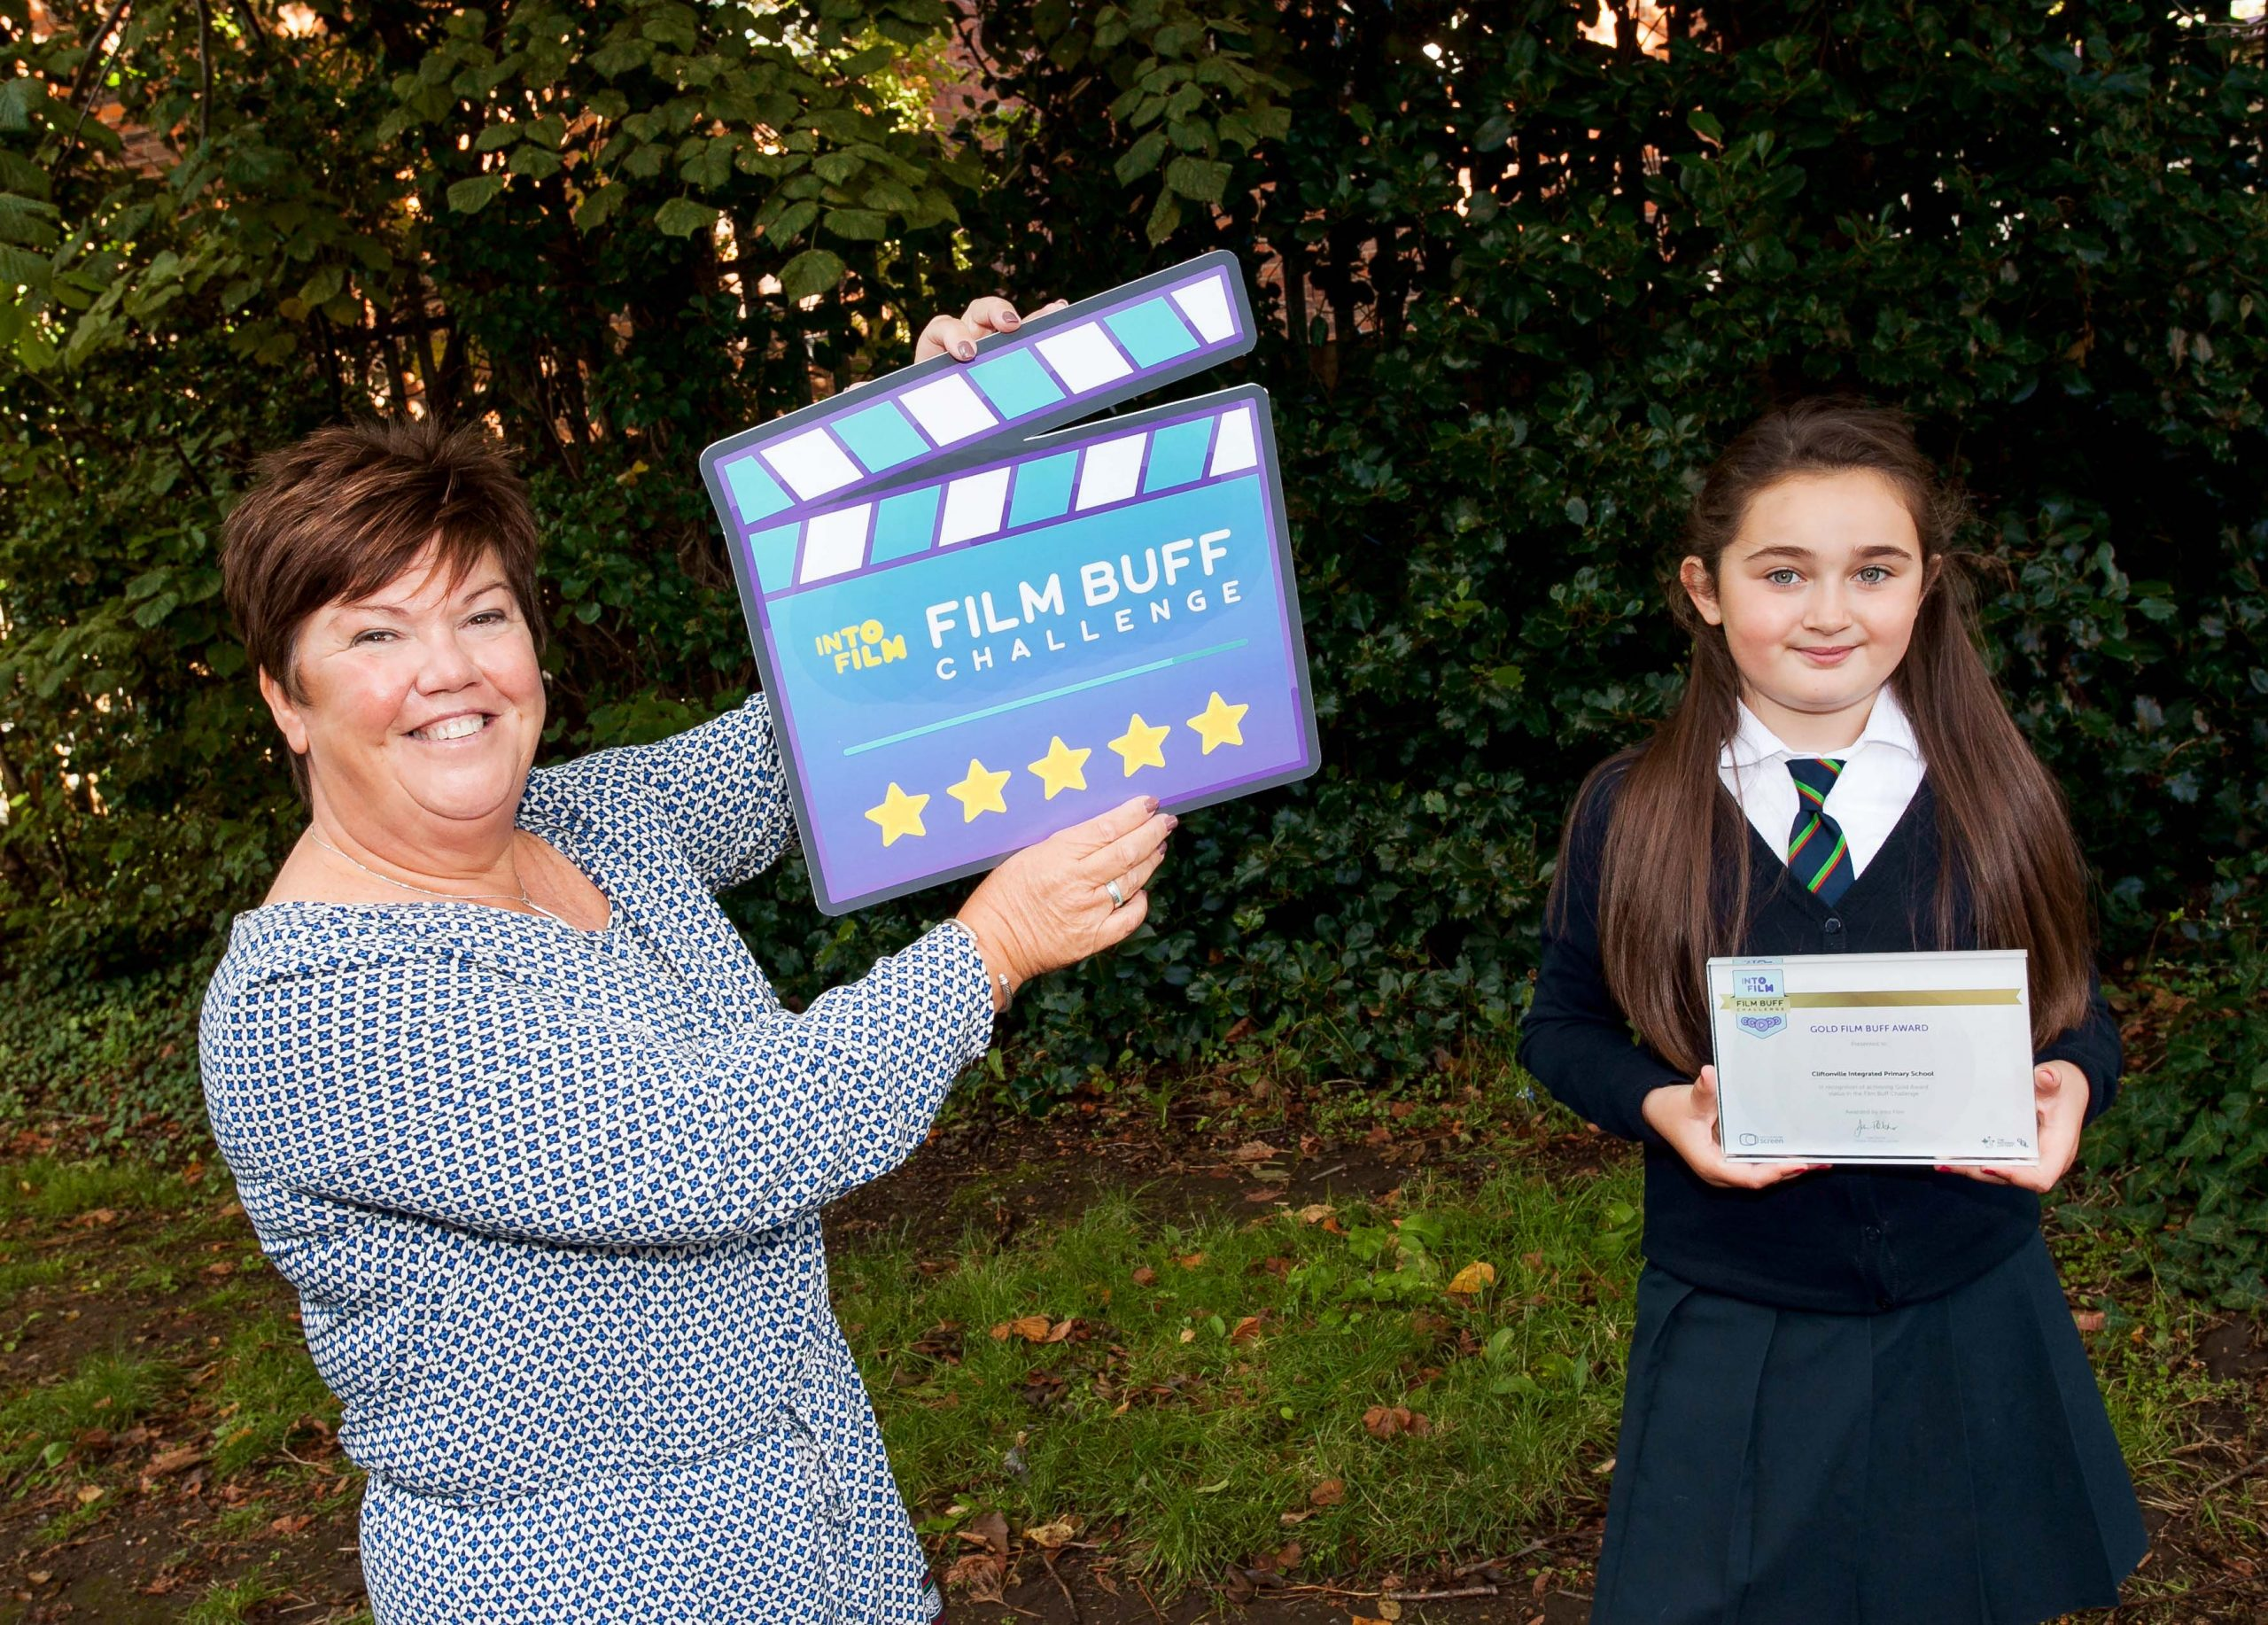 Children encouraged to take the Film Buff Challenge!